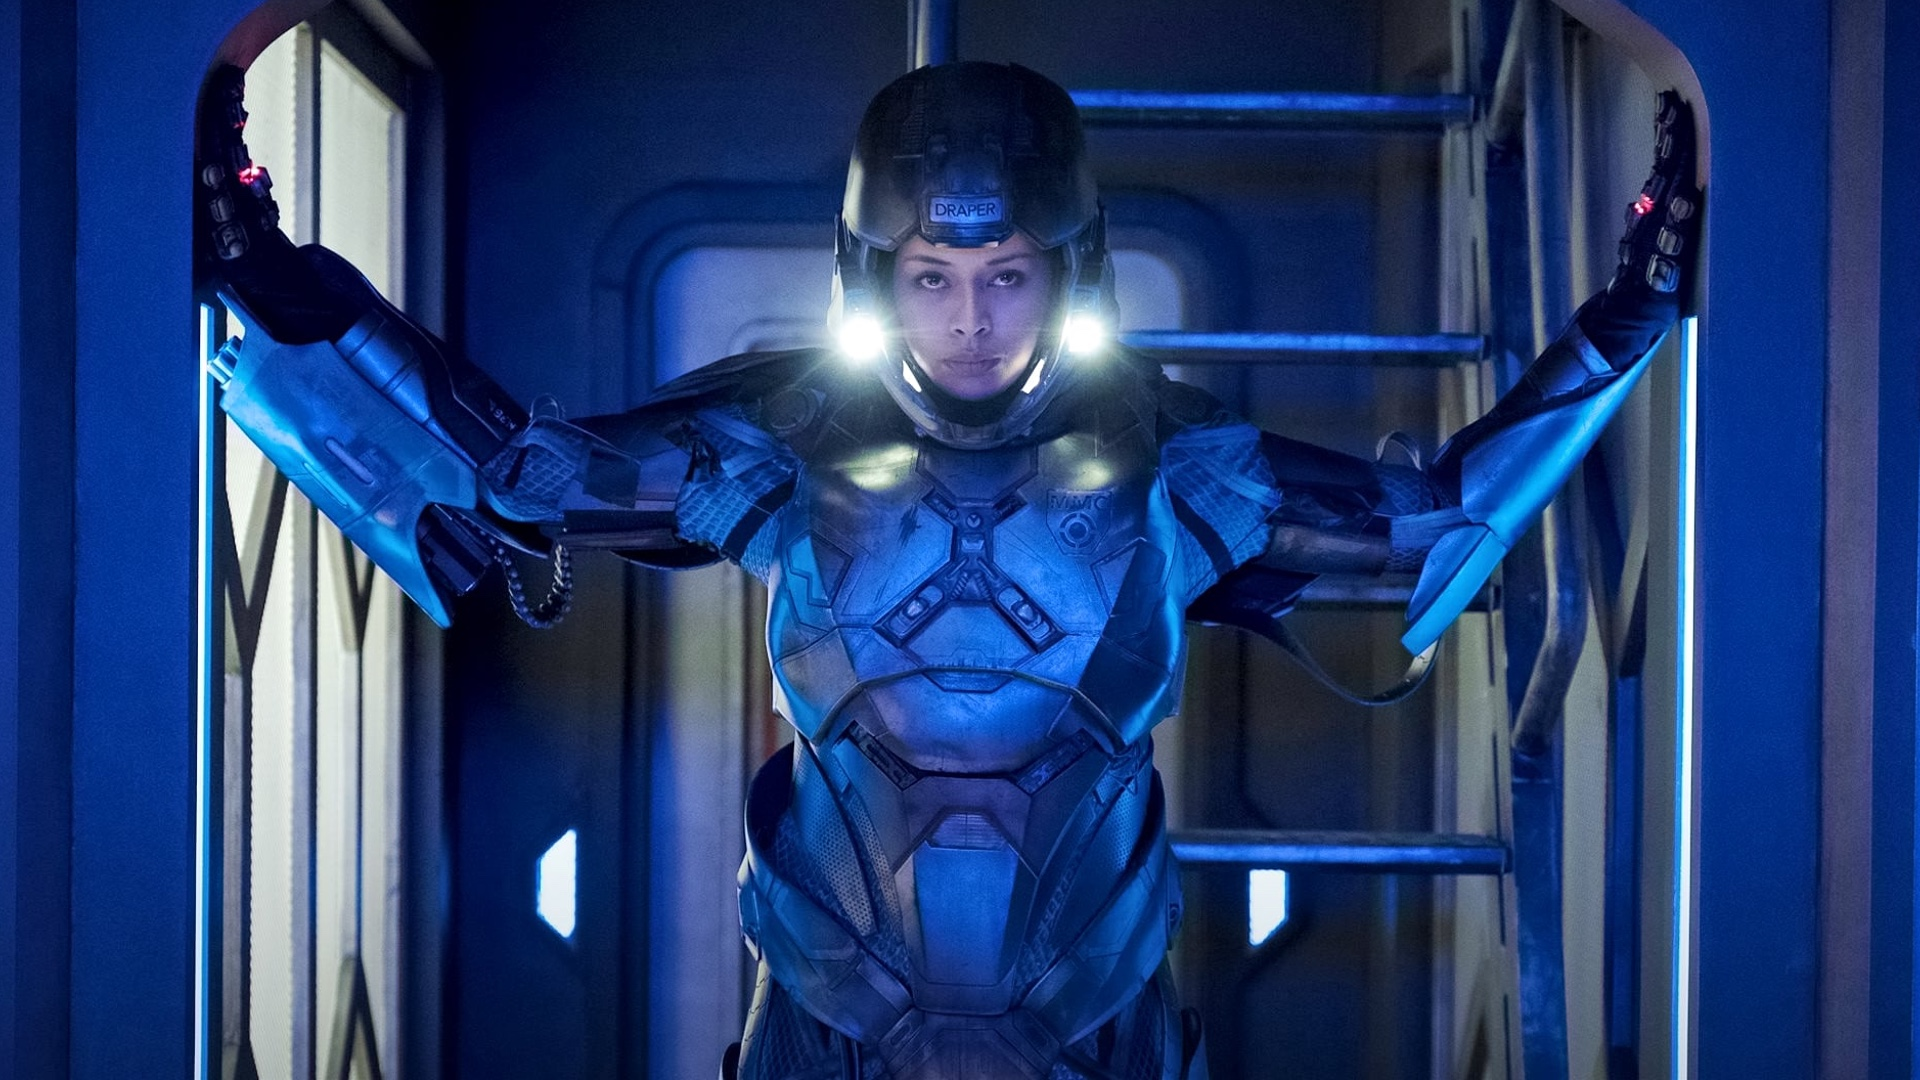 the-expanse-has-officially-been-picked-up-for-season-4-by-amazon-social.jpg